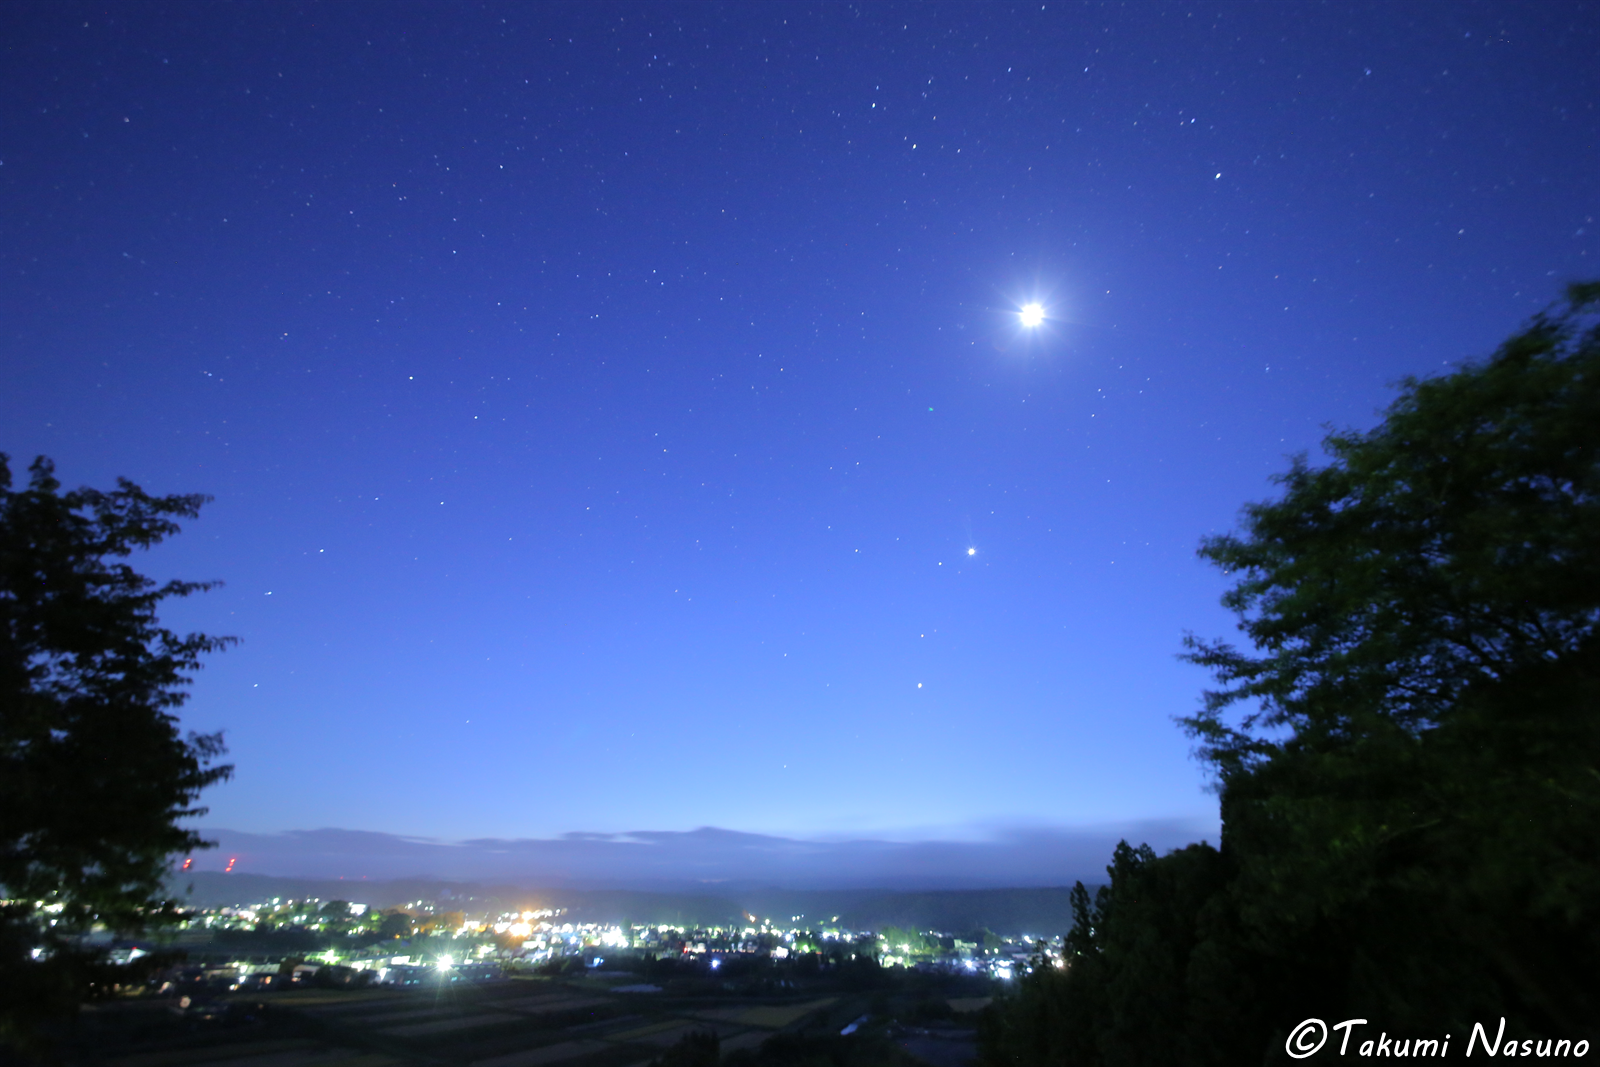 Starscape over Tanagura Town